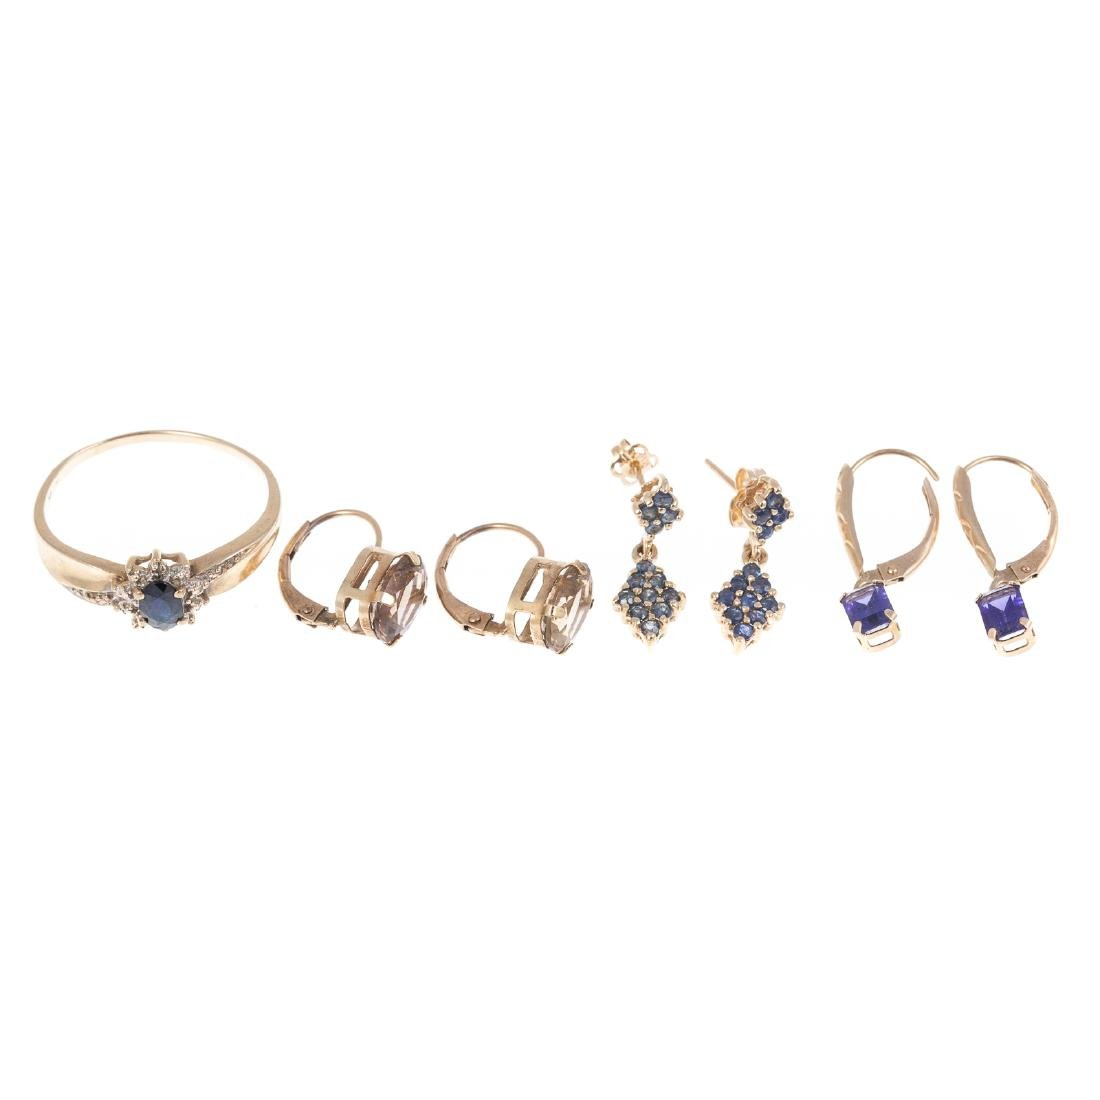 A Collection of Gemstone Earrings & Ring